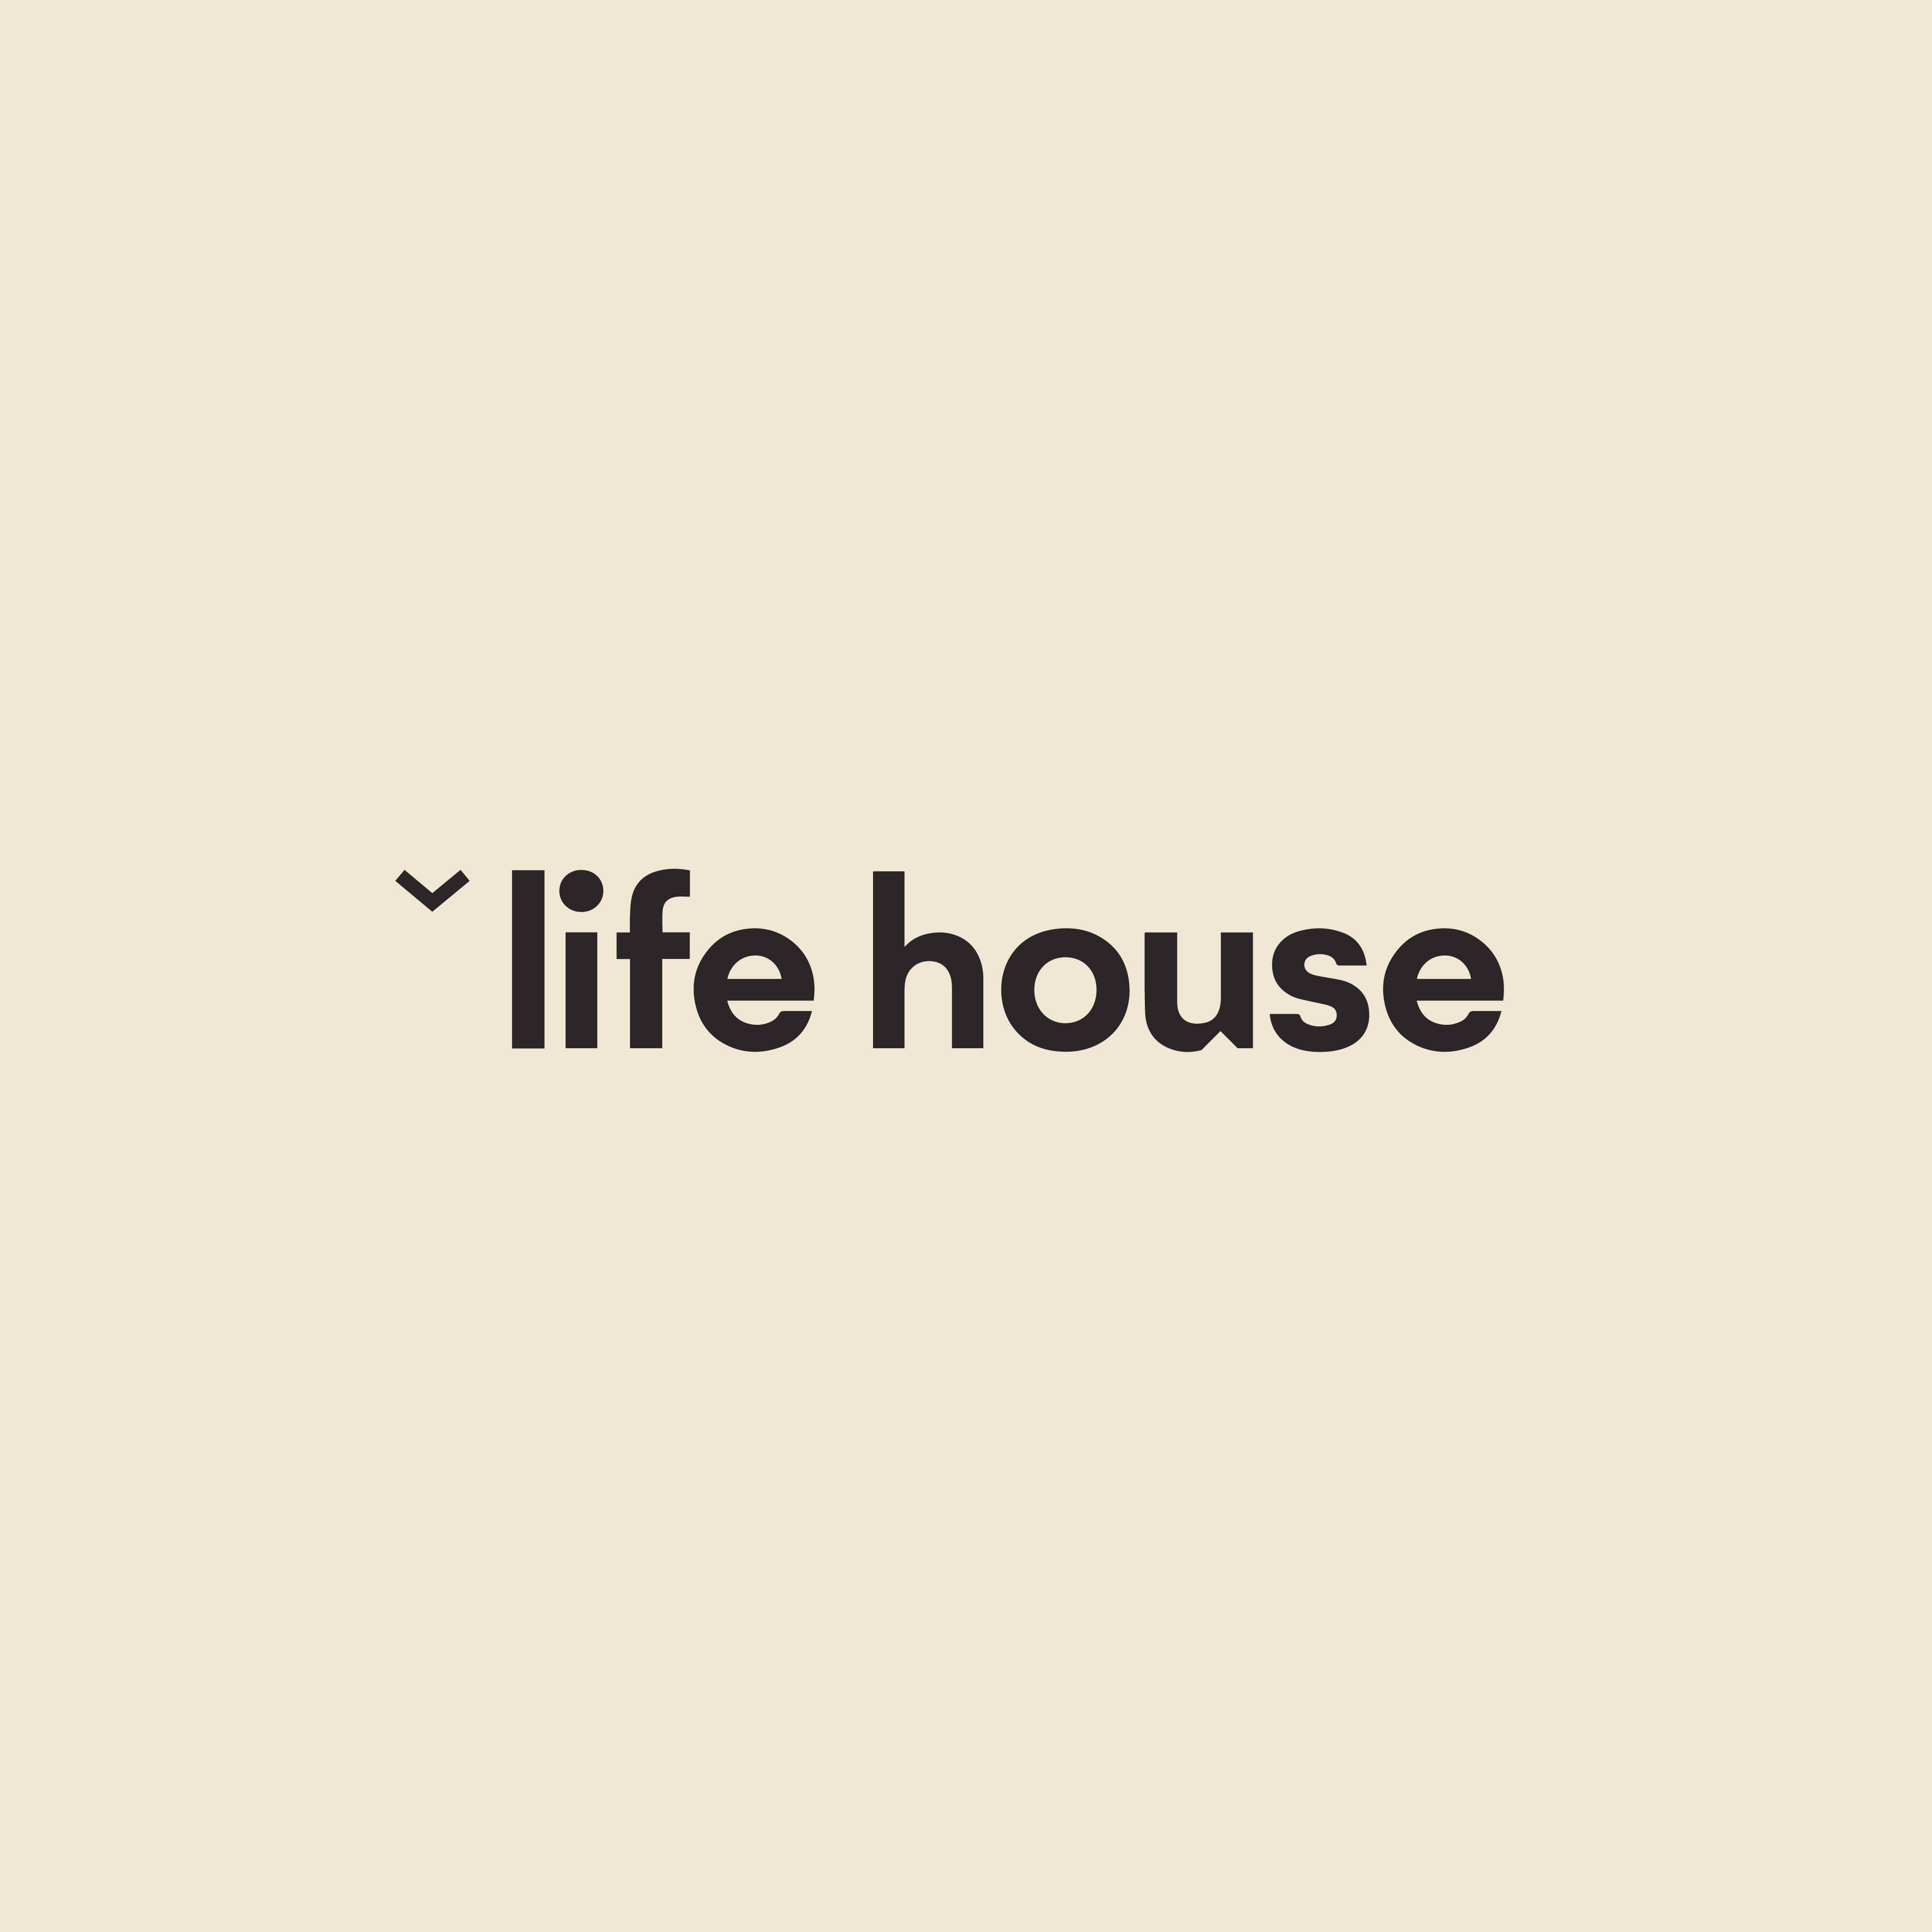 19.0304_LifeHouse-01